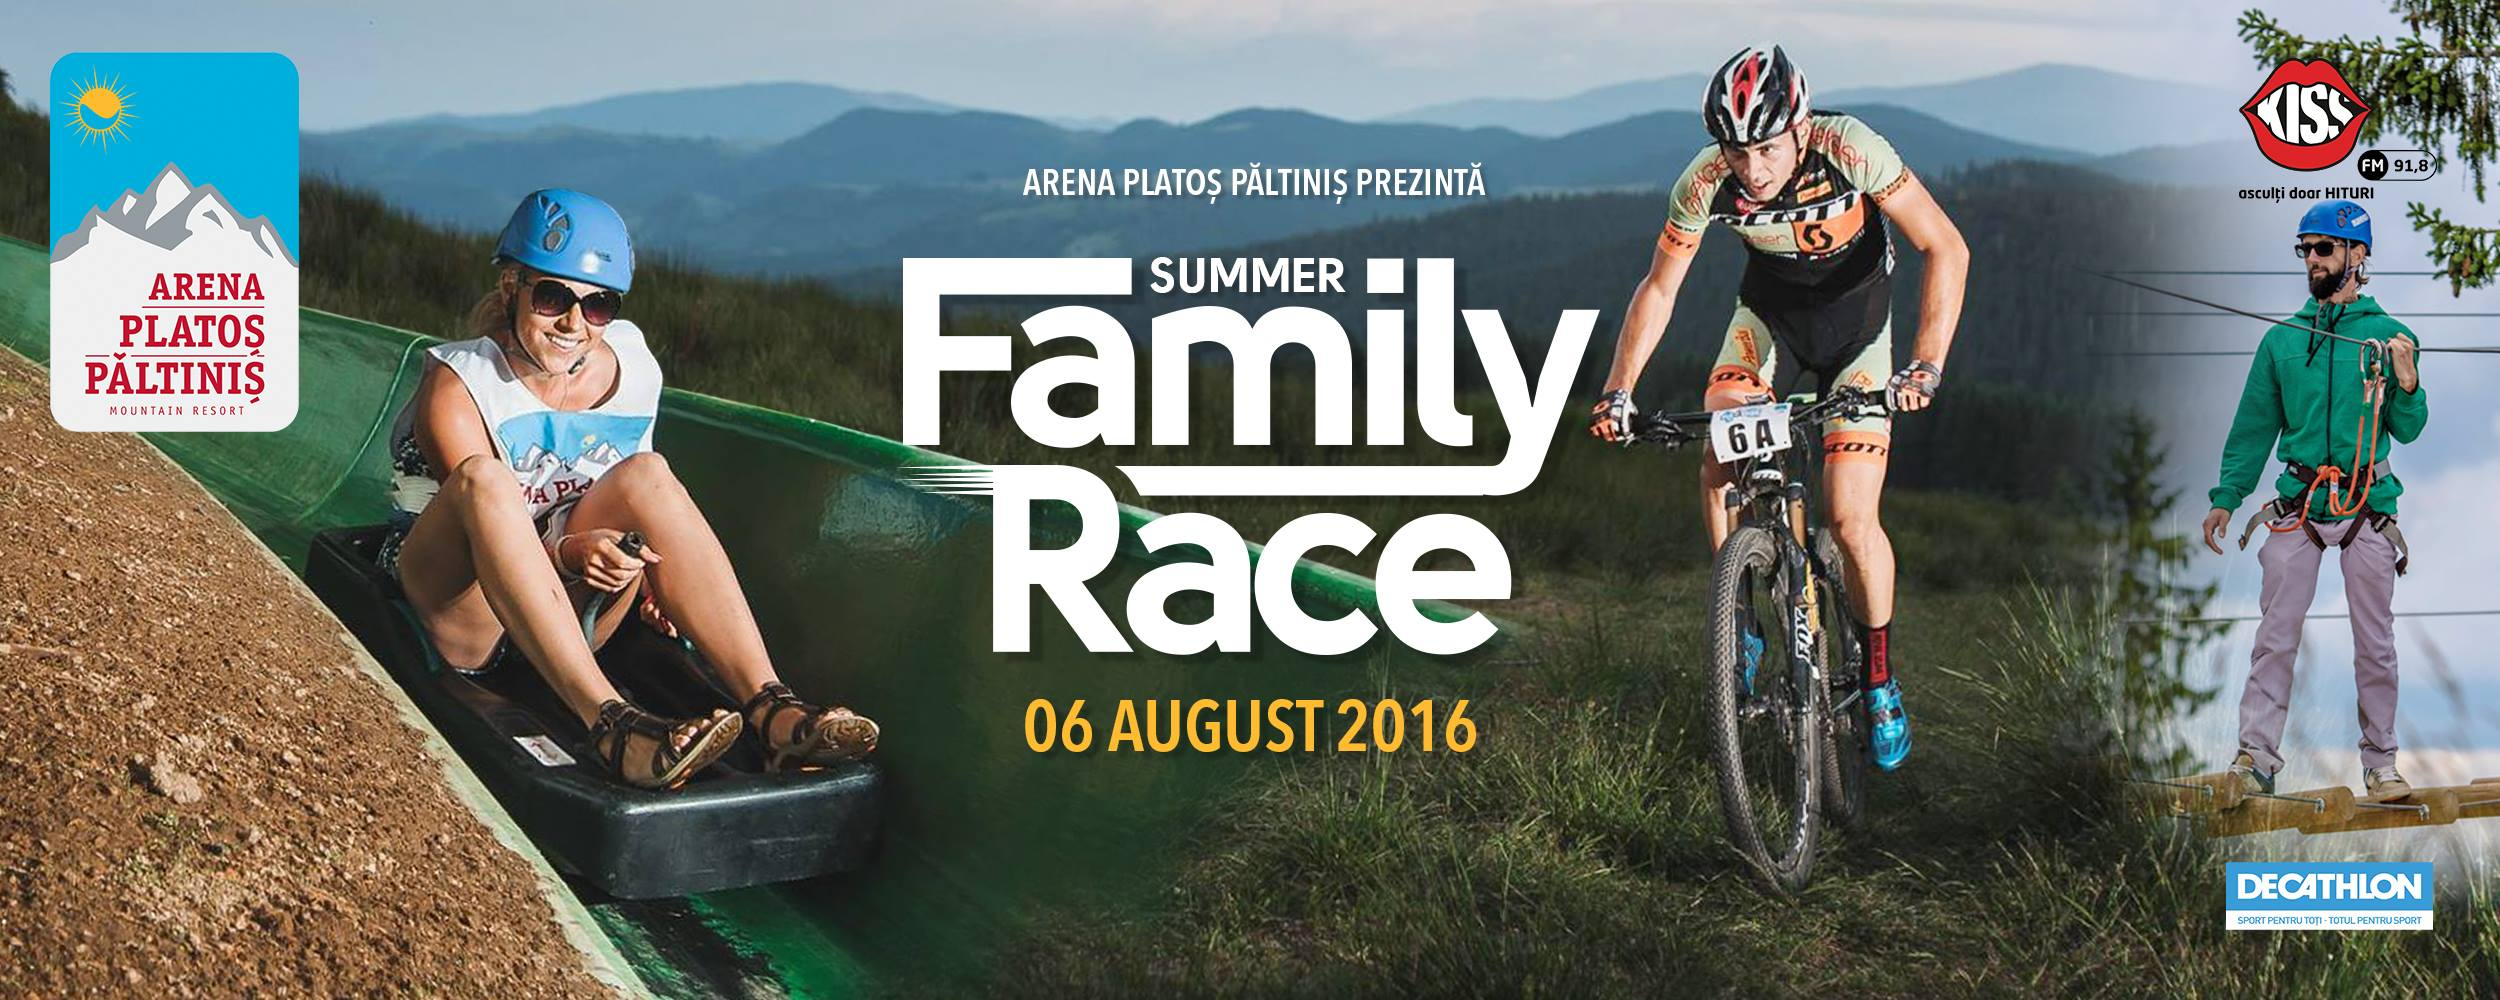 Summer Family Race